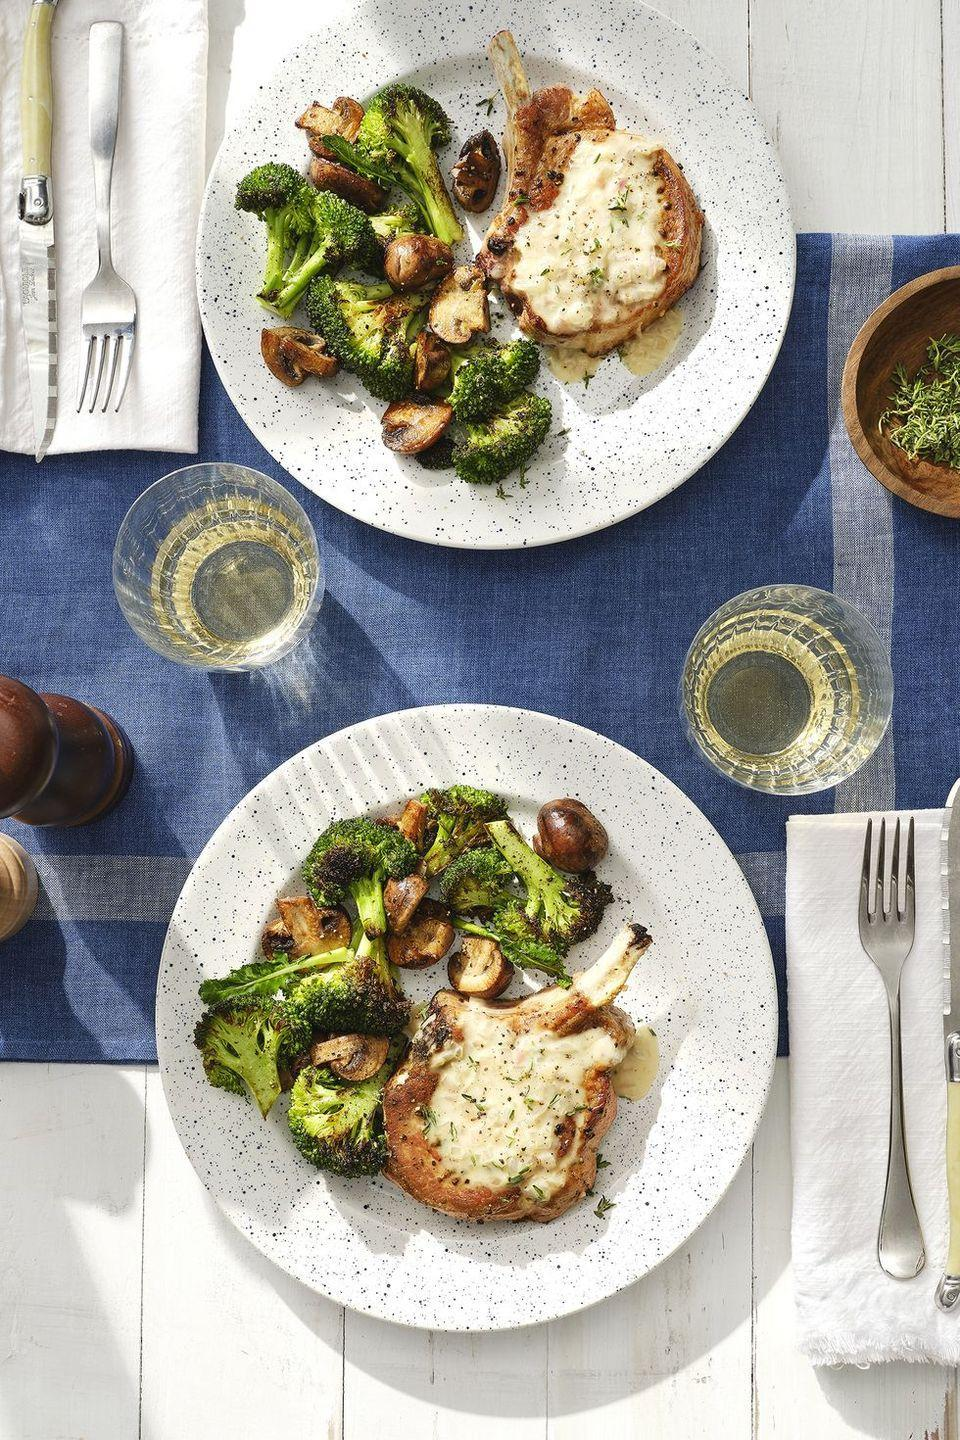 """<p>You can roast a duo of broccoli and mushroom florets perfectly together in the oven. With an easy sautéed pork chop, dinner is ready in under an hour.</p><p><em><a href=""""https://www.countryliving.com/food-drinks/a30418573/smothered-pork-chops-recipe/"""" rel=""""nofollow noopener"""" target=""""_blank"""" data-ylk=""""slk:Get the recipe for Country Living »"""" class=""""link rapid-noclick-resp"""">Get the recipe for Country Living »</a></em> </p>"""